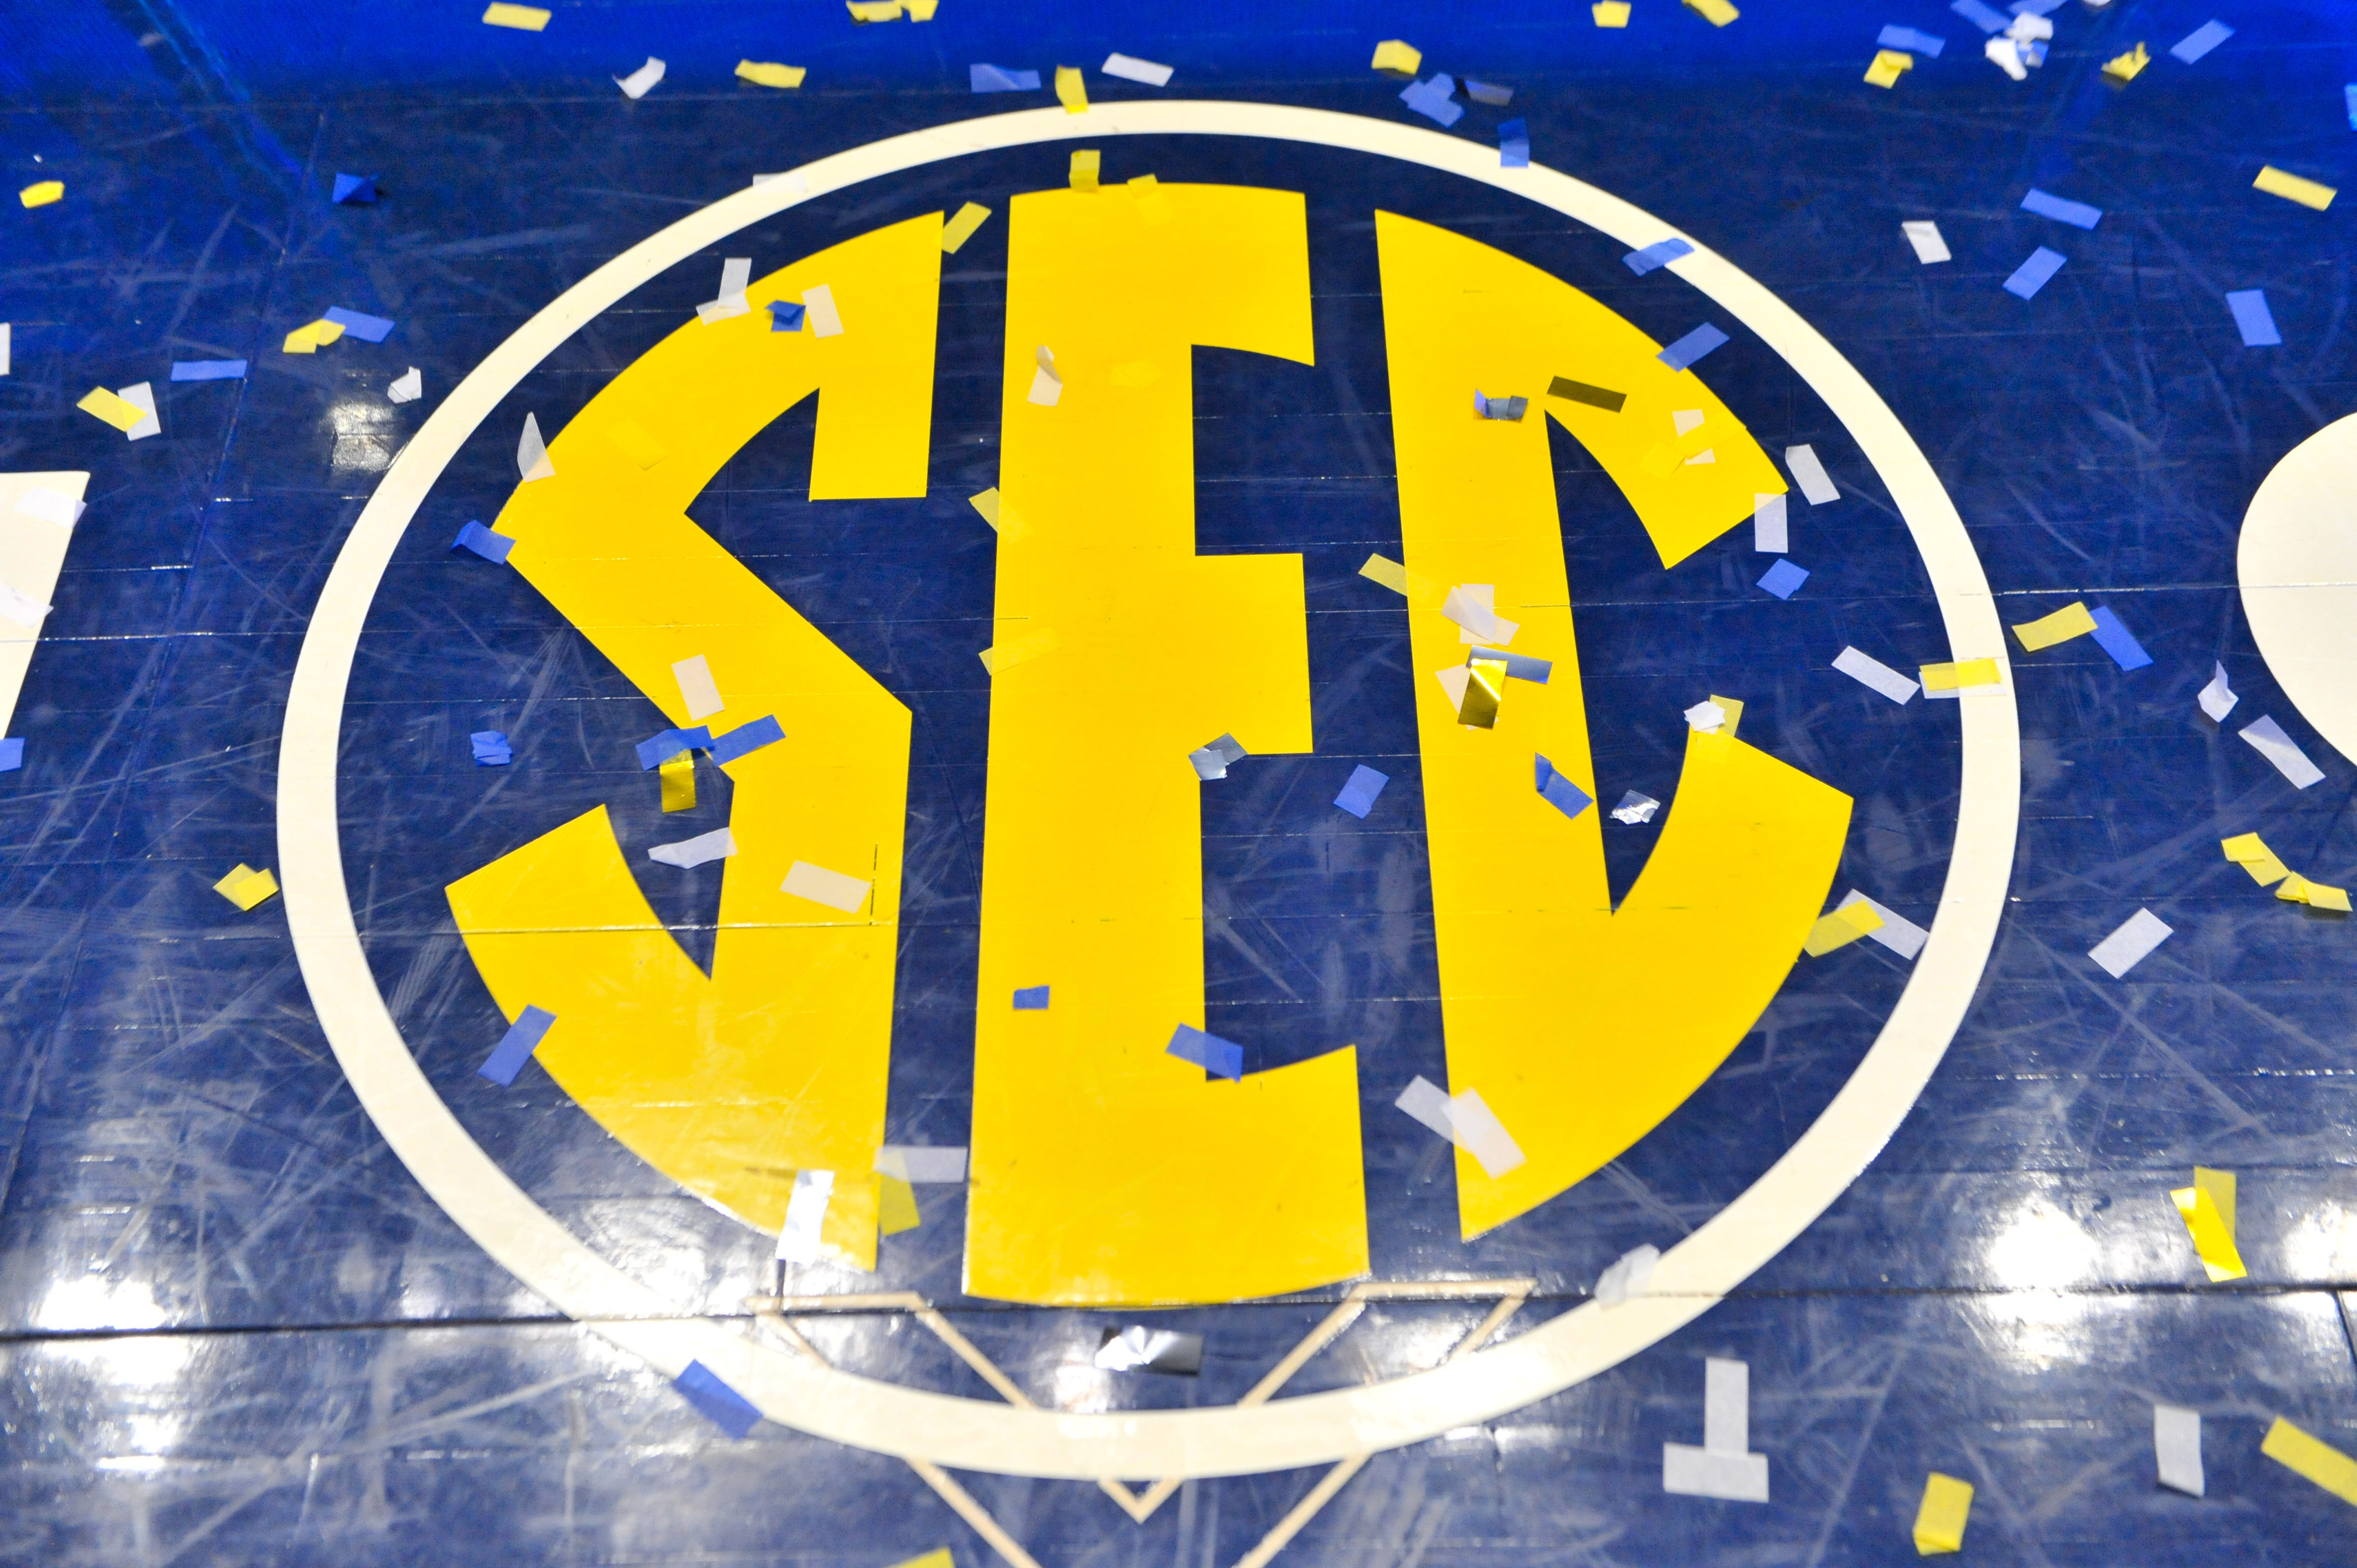 Kentucky Basketball Named Preseason Favorite For Sec Crown: Seven SEC Teams Make Bill Connelly's S&P+ Projected 2017